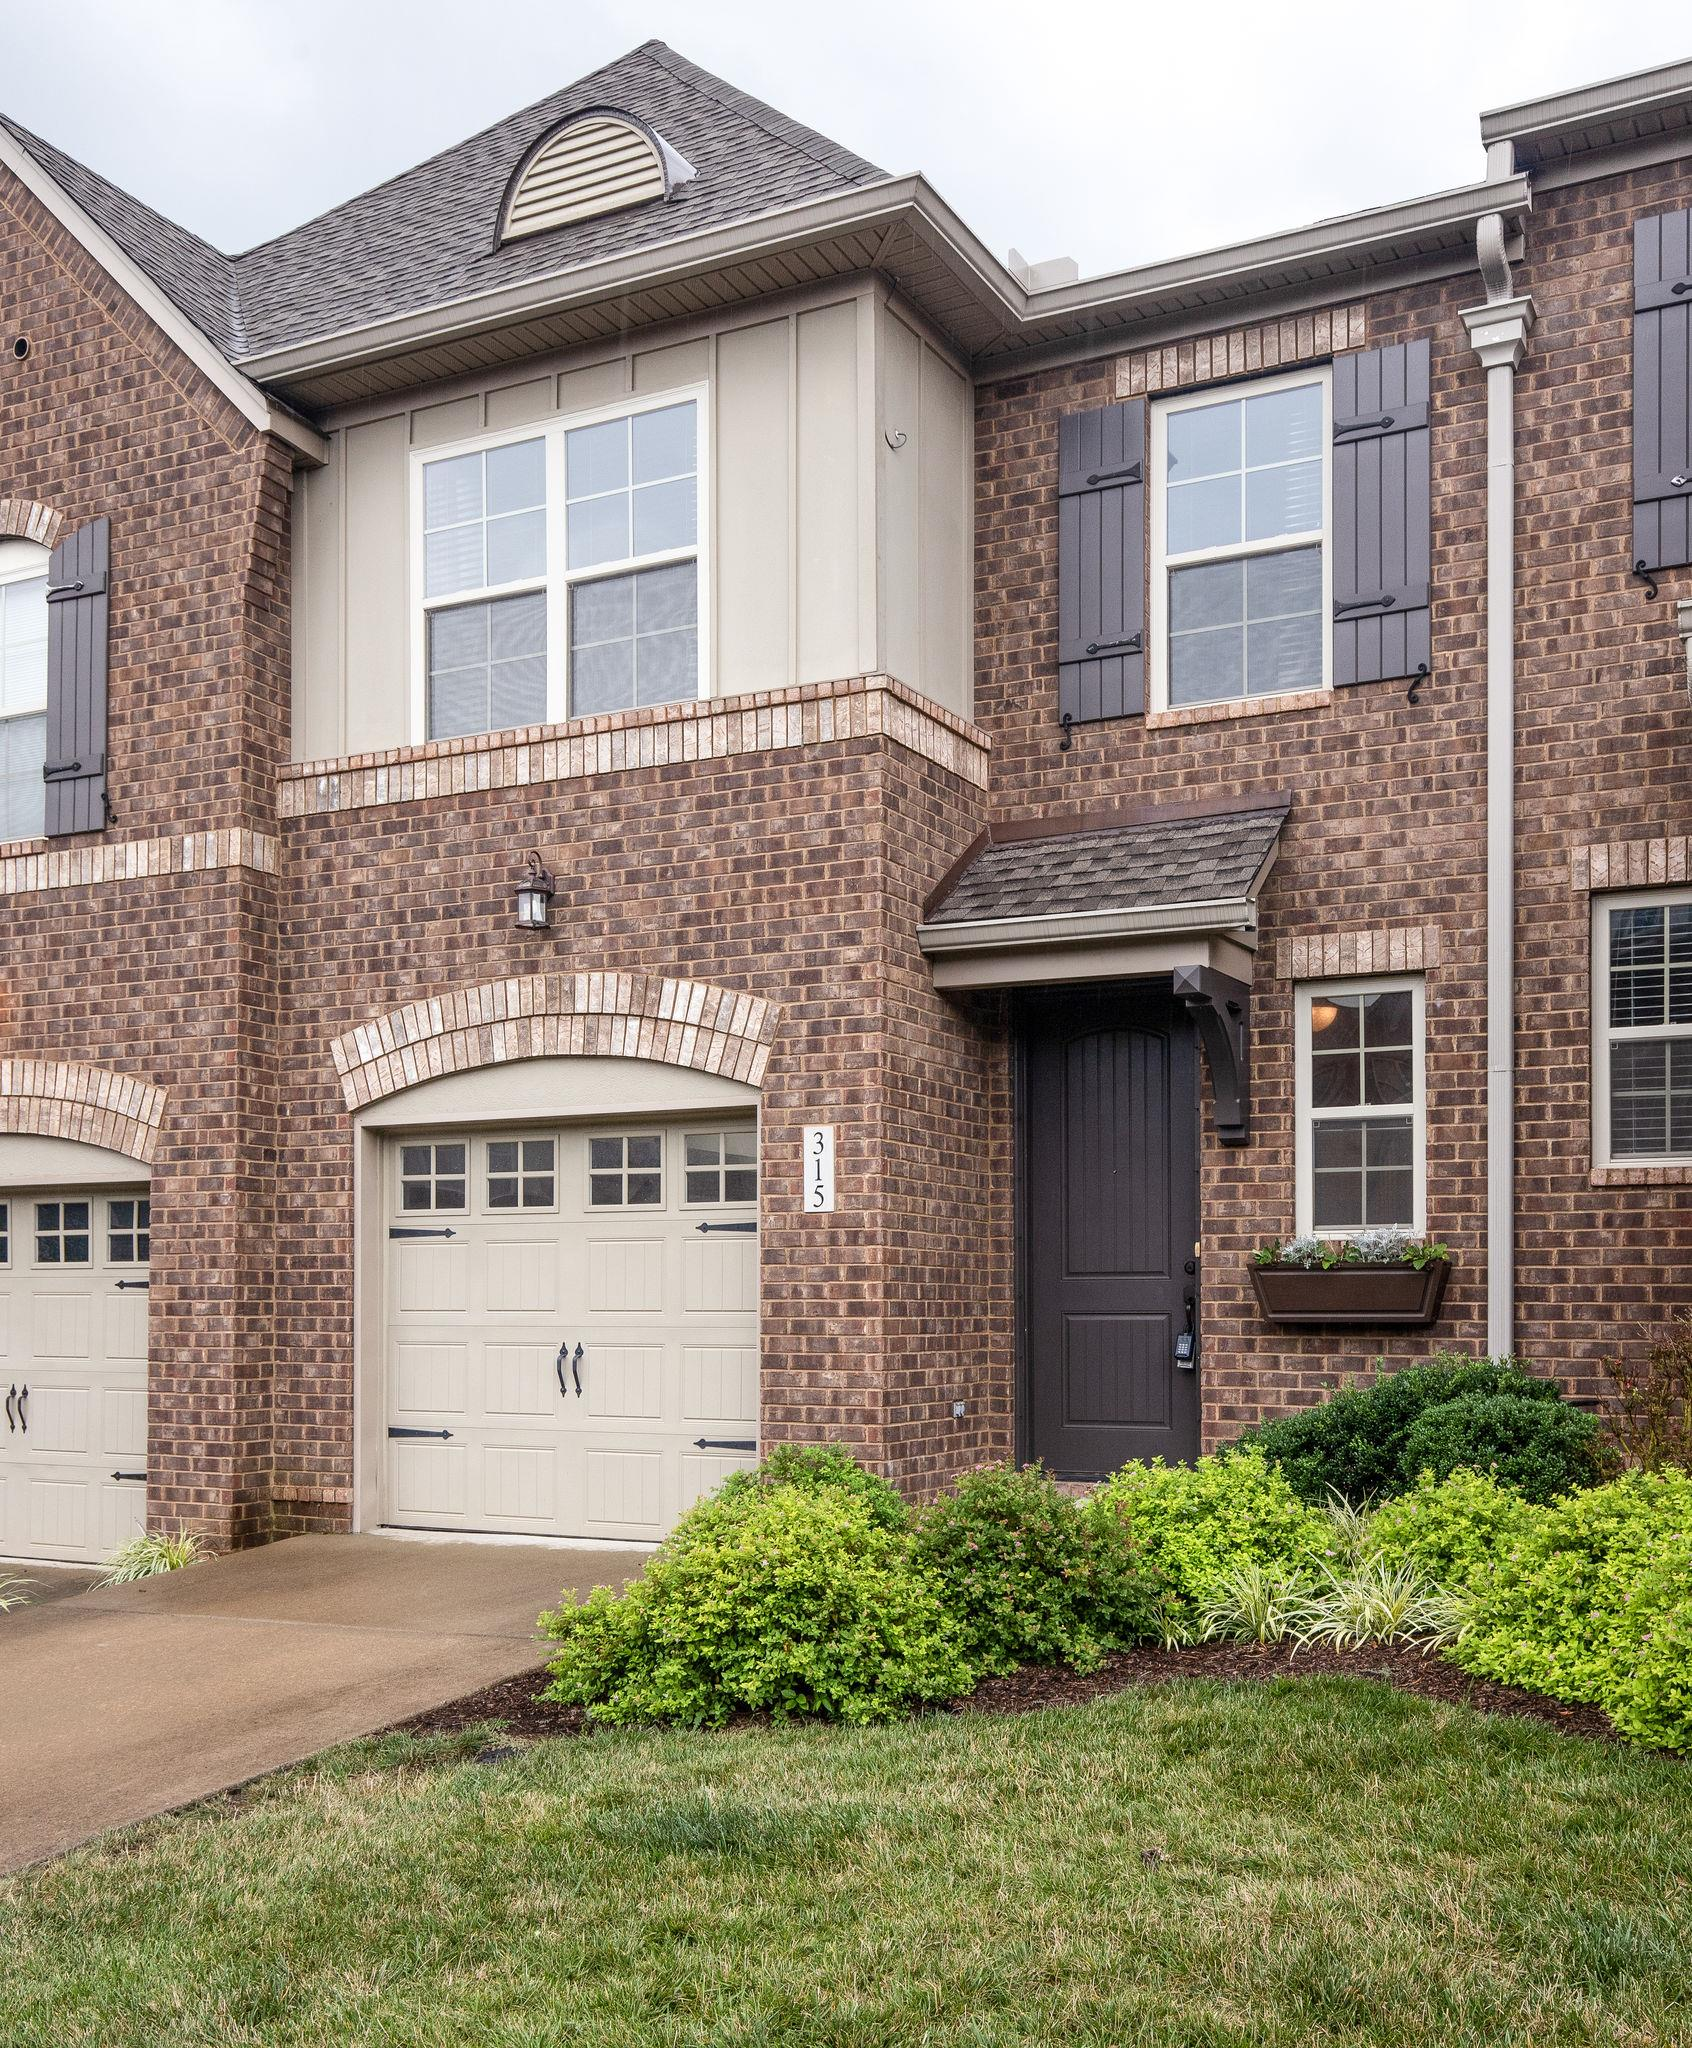 315 Windgrove Ter, Mount Juliet, TN 37122 - Mount Juliet, TN real estate listing